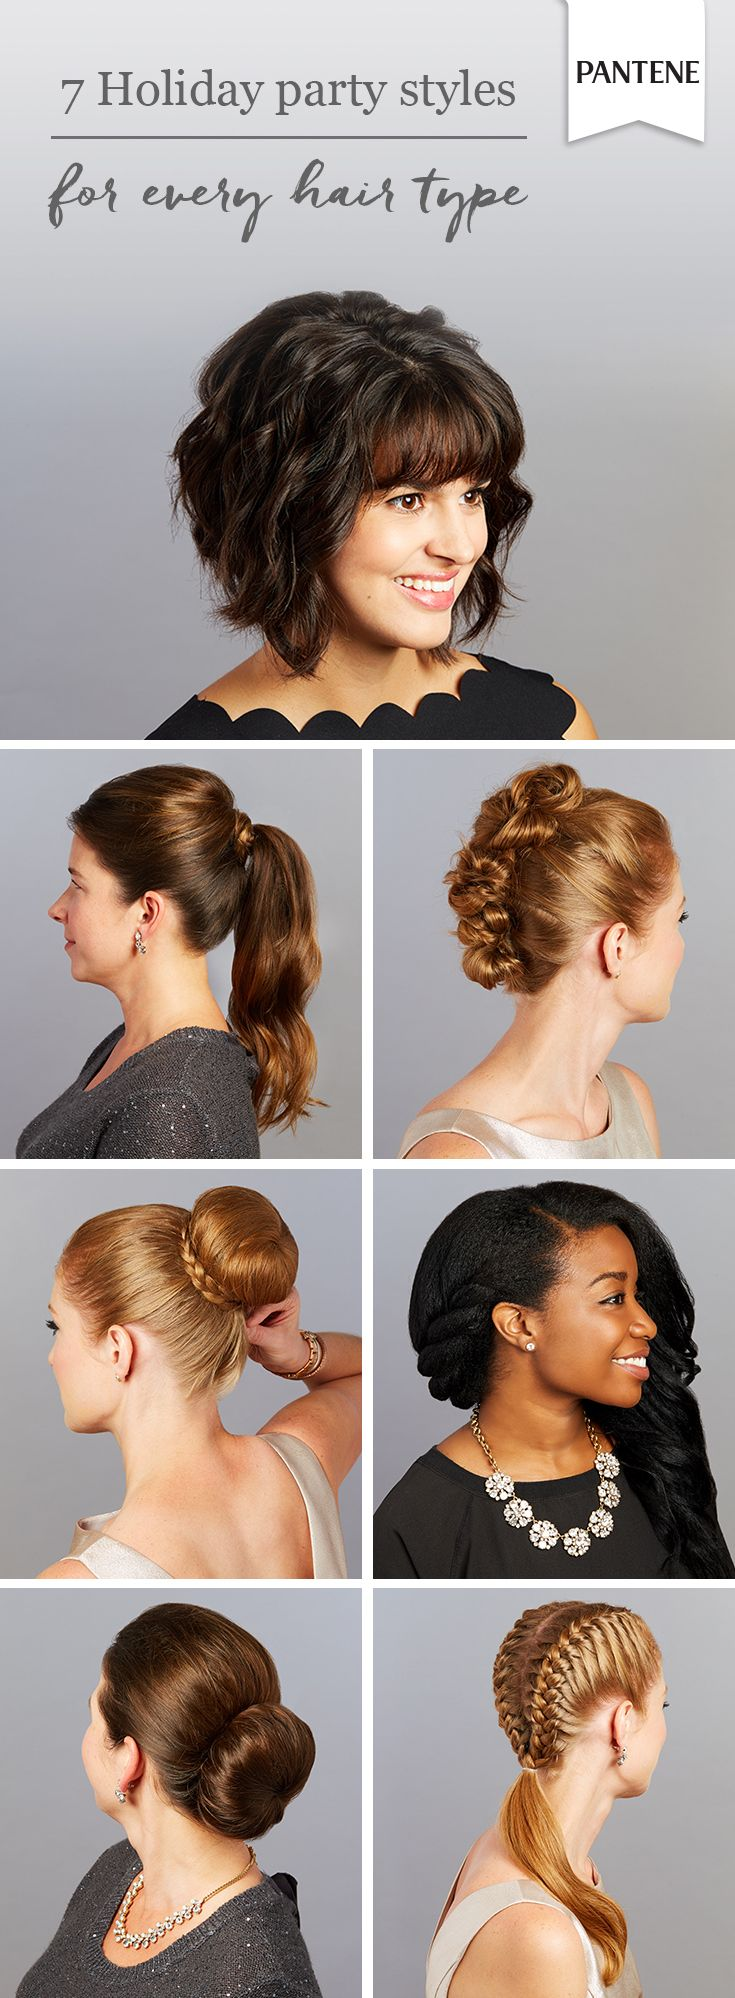 7 holiday for hairstyles parties